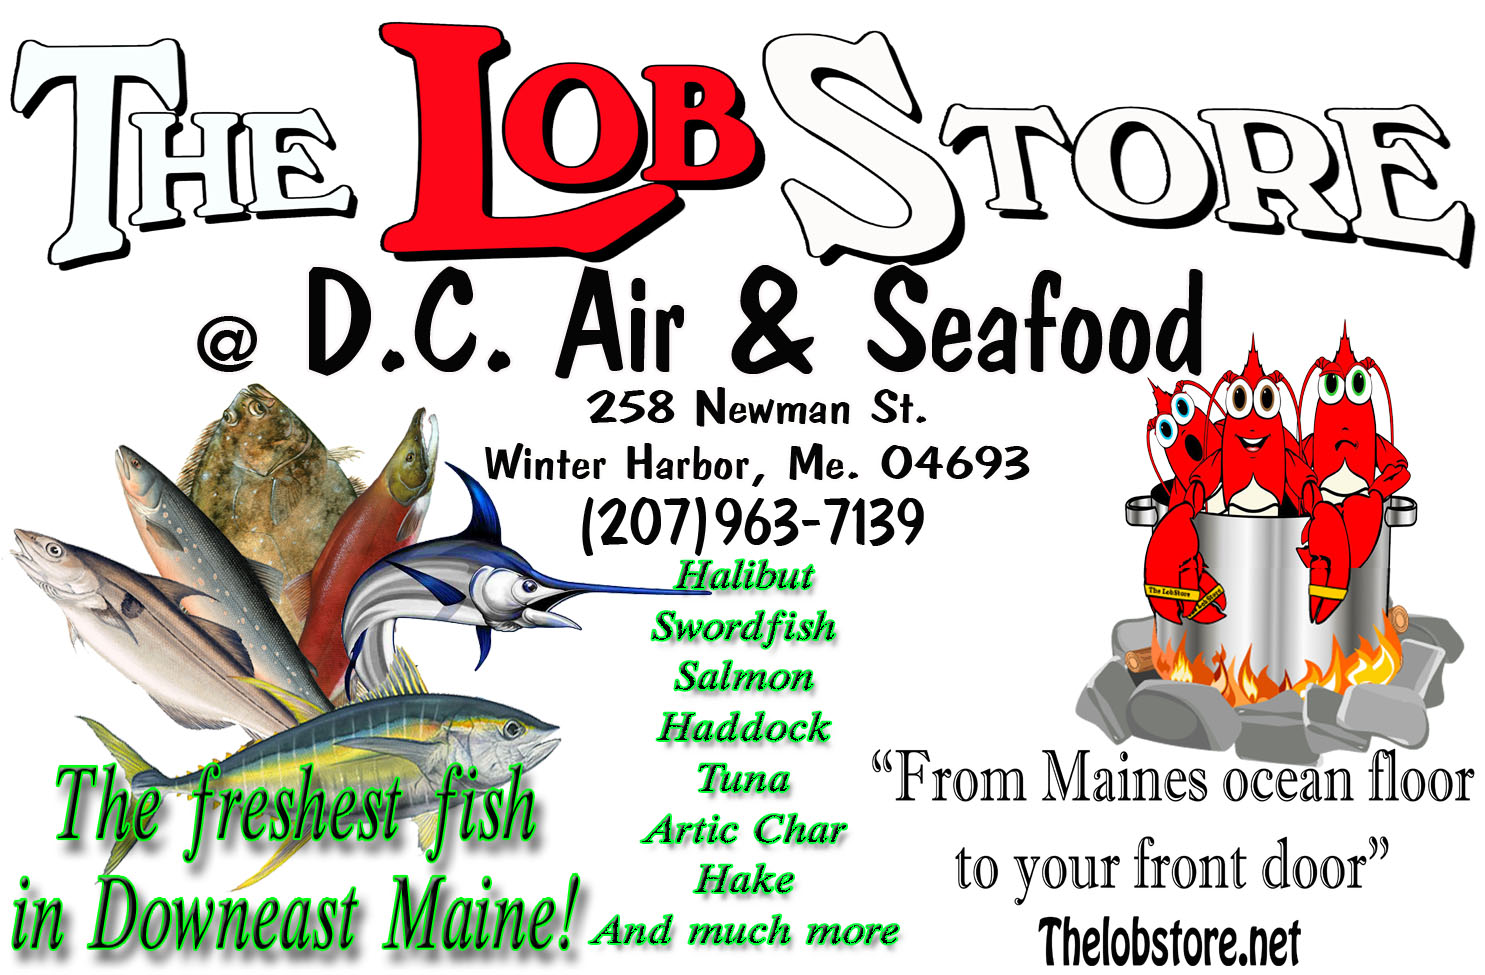 The Lobstore @ D.C. Air & Seafood